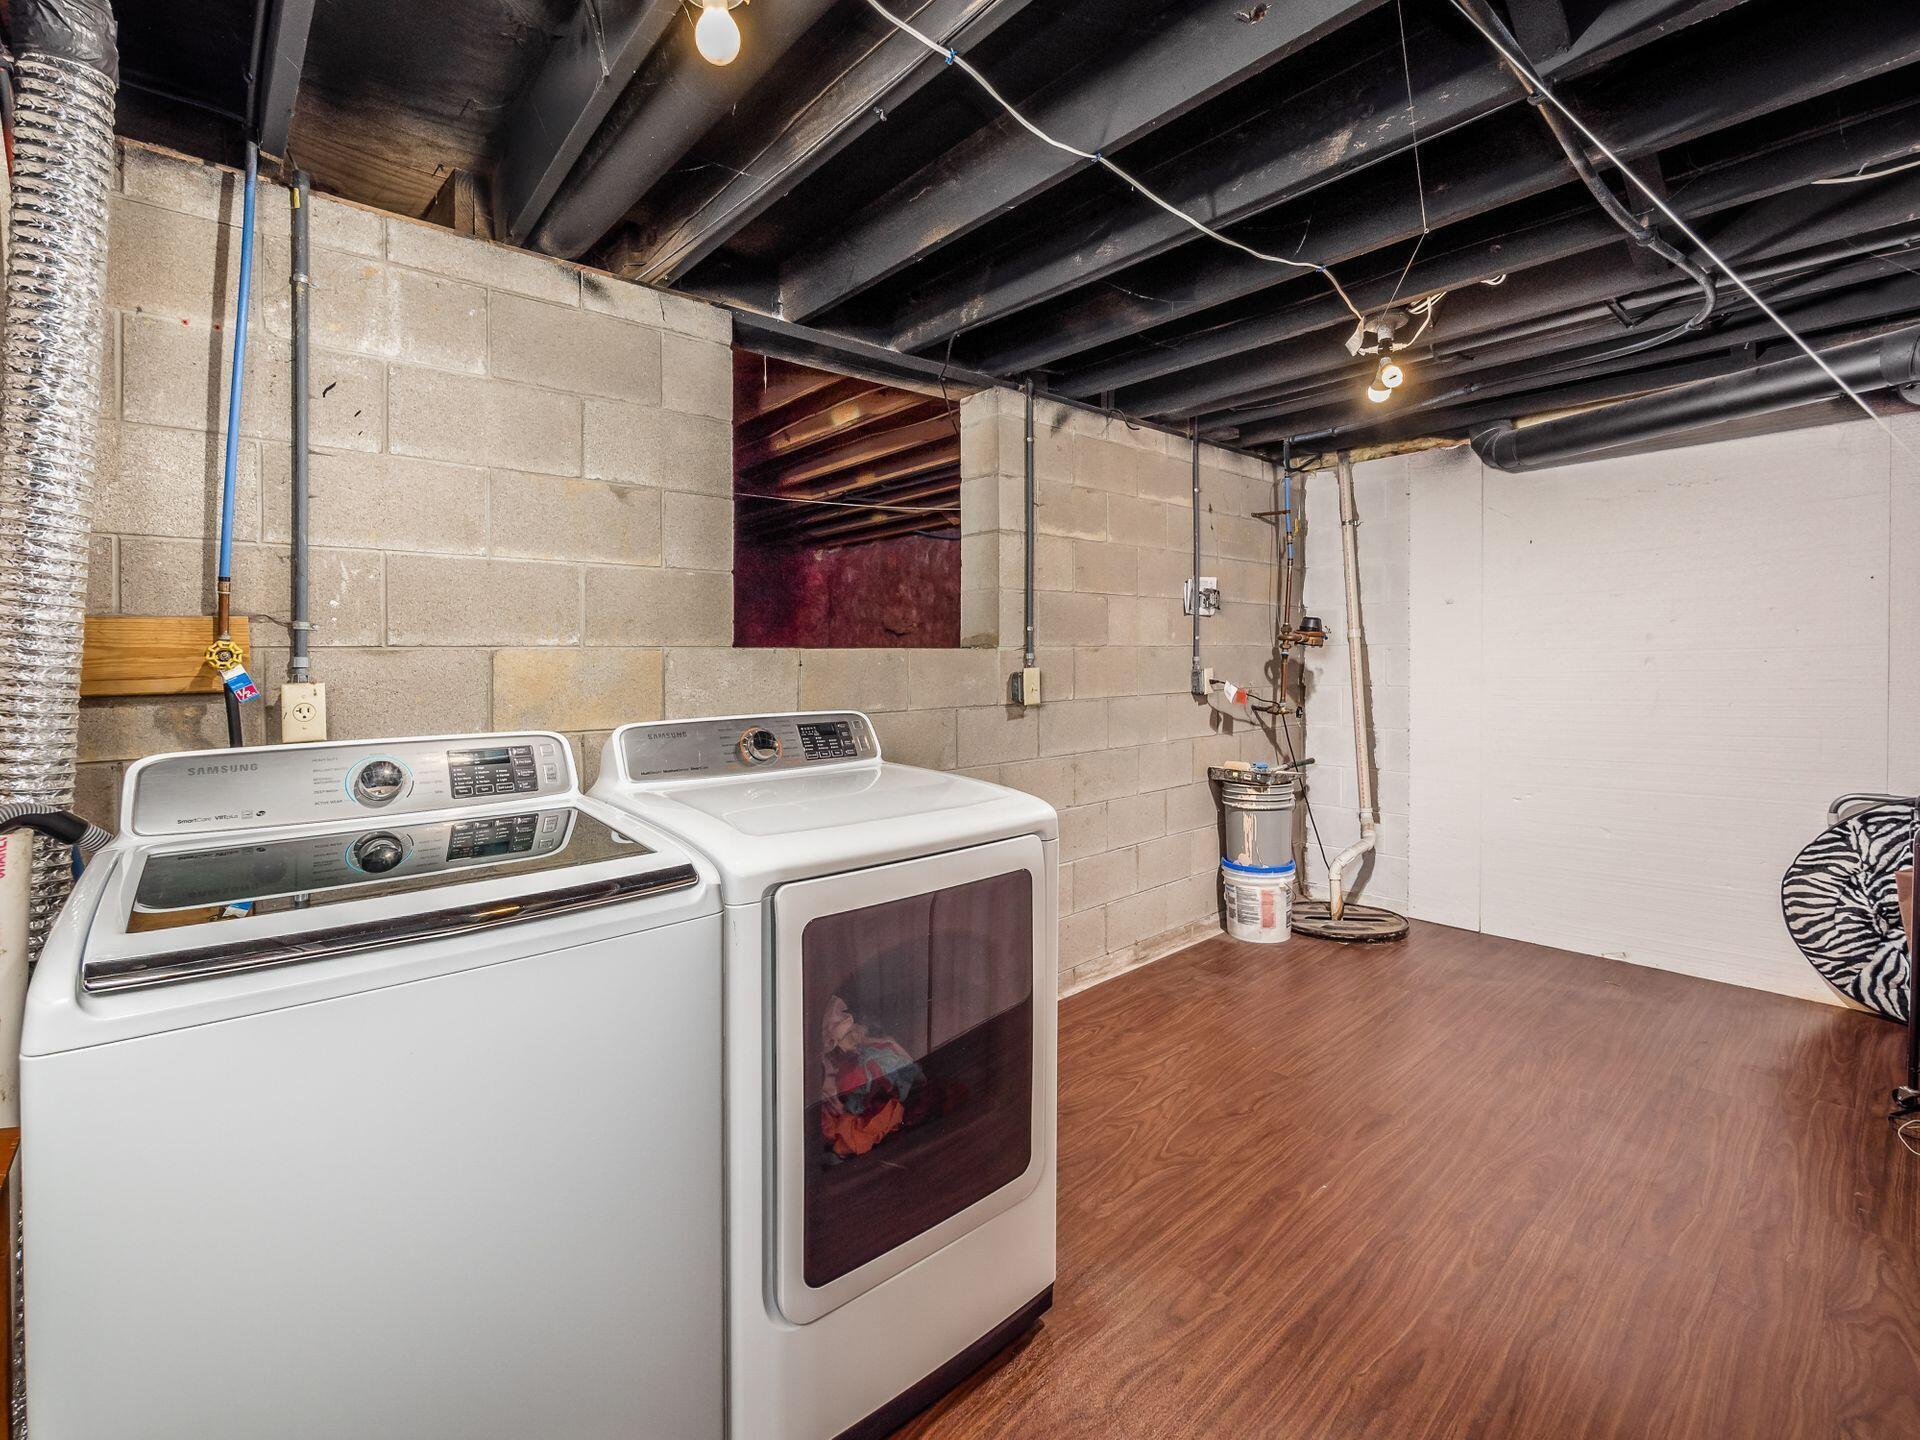 Laundry room & crawl space in basement